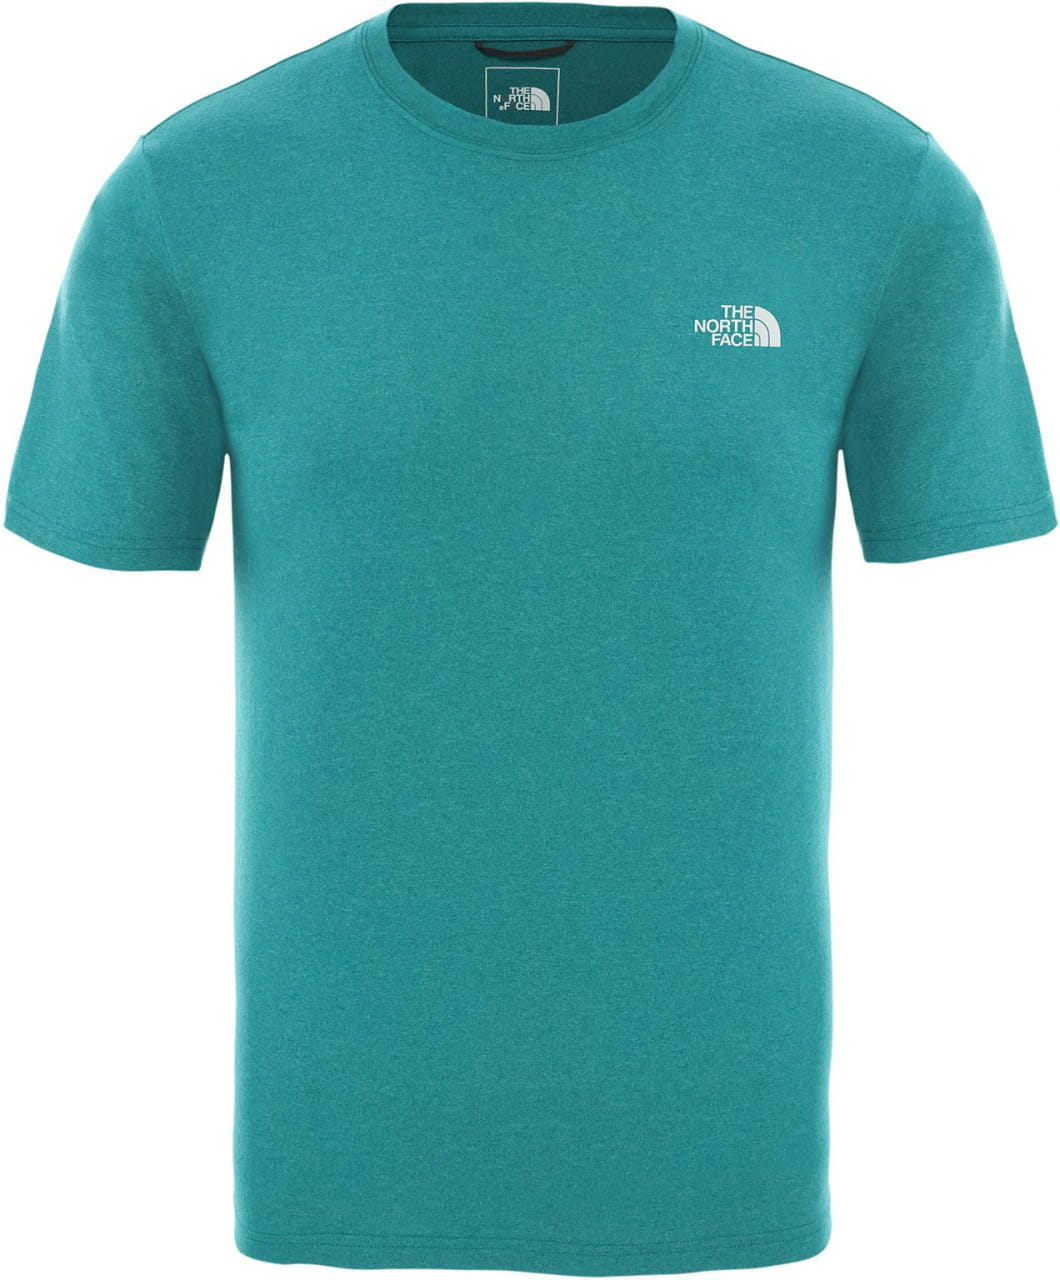 T-Shirts The North Face Men's Reaxion Amp T-Shirt